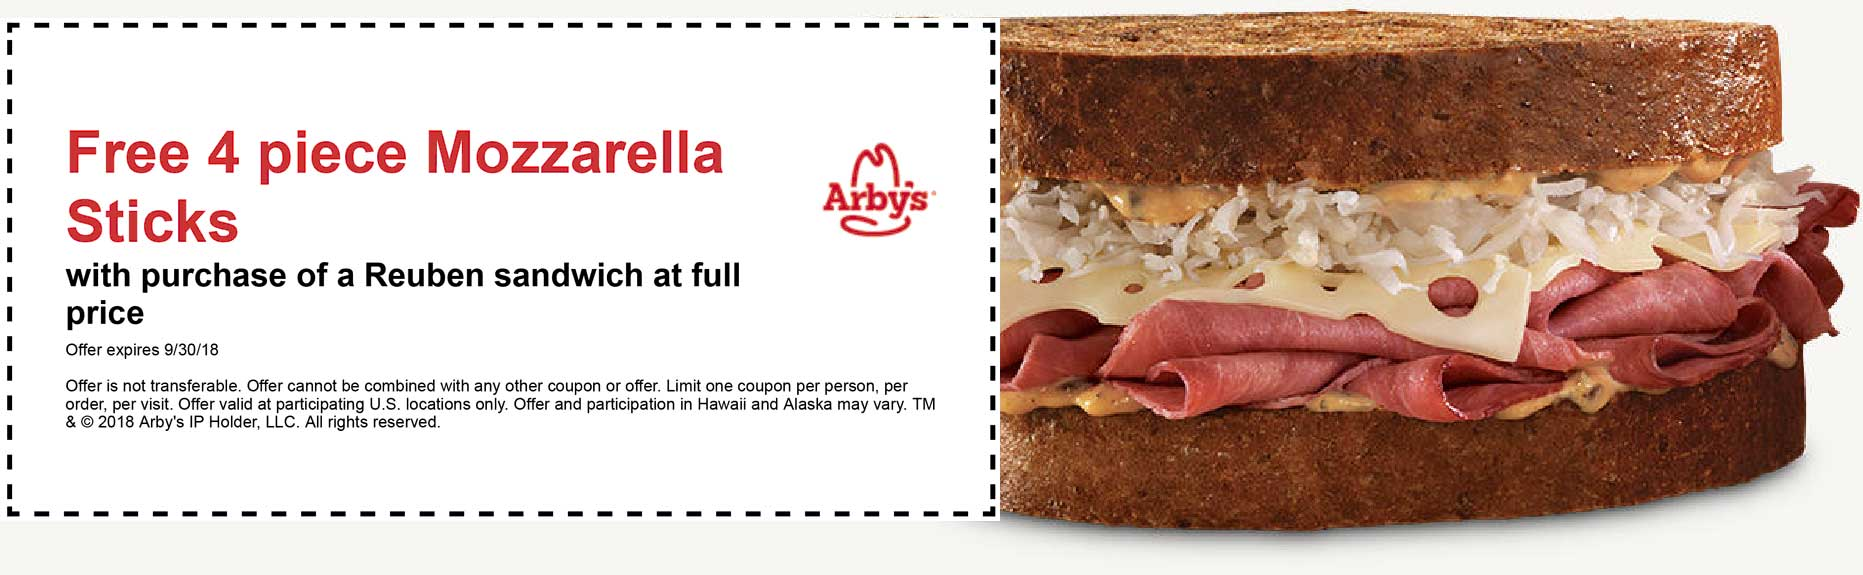 Arbys Coupon May 2019 Free mozzarella sticks with your Reuben sandwich at Arbys